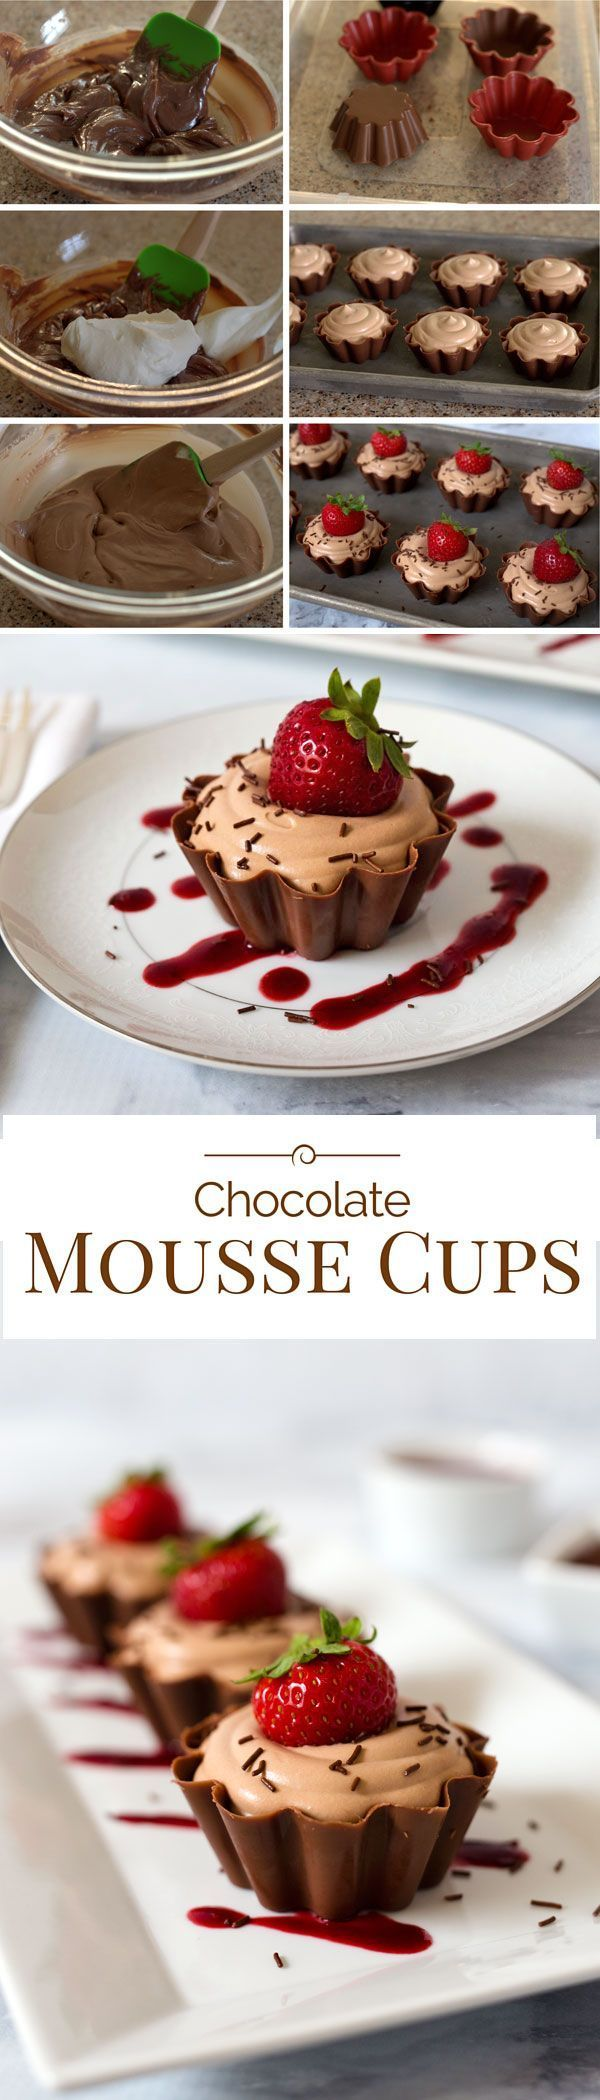 Chocolate Mousse Cups and Ubud